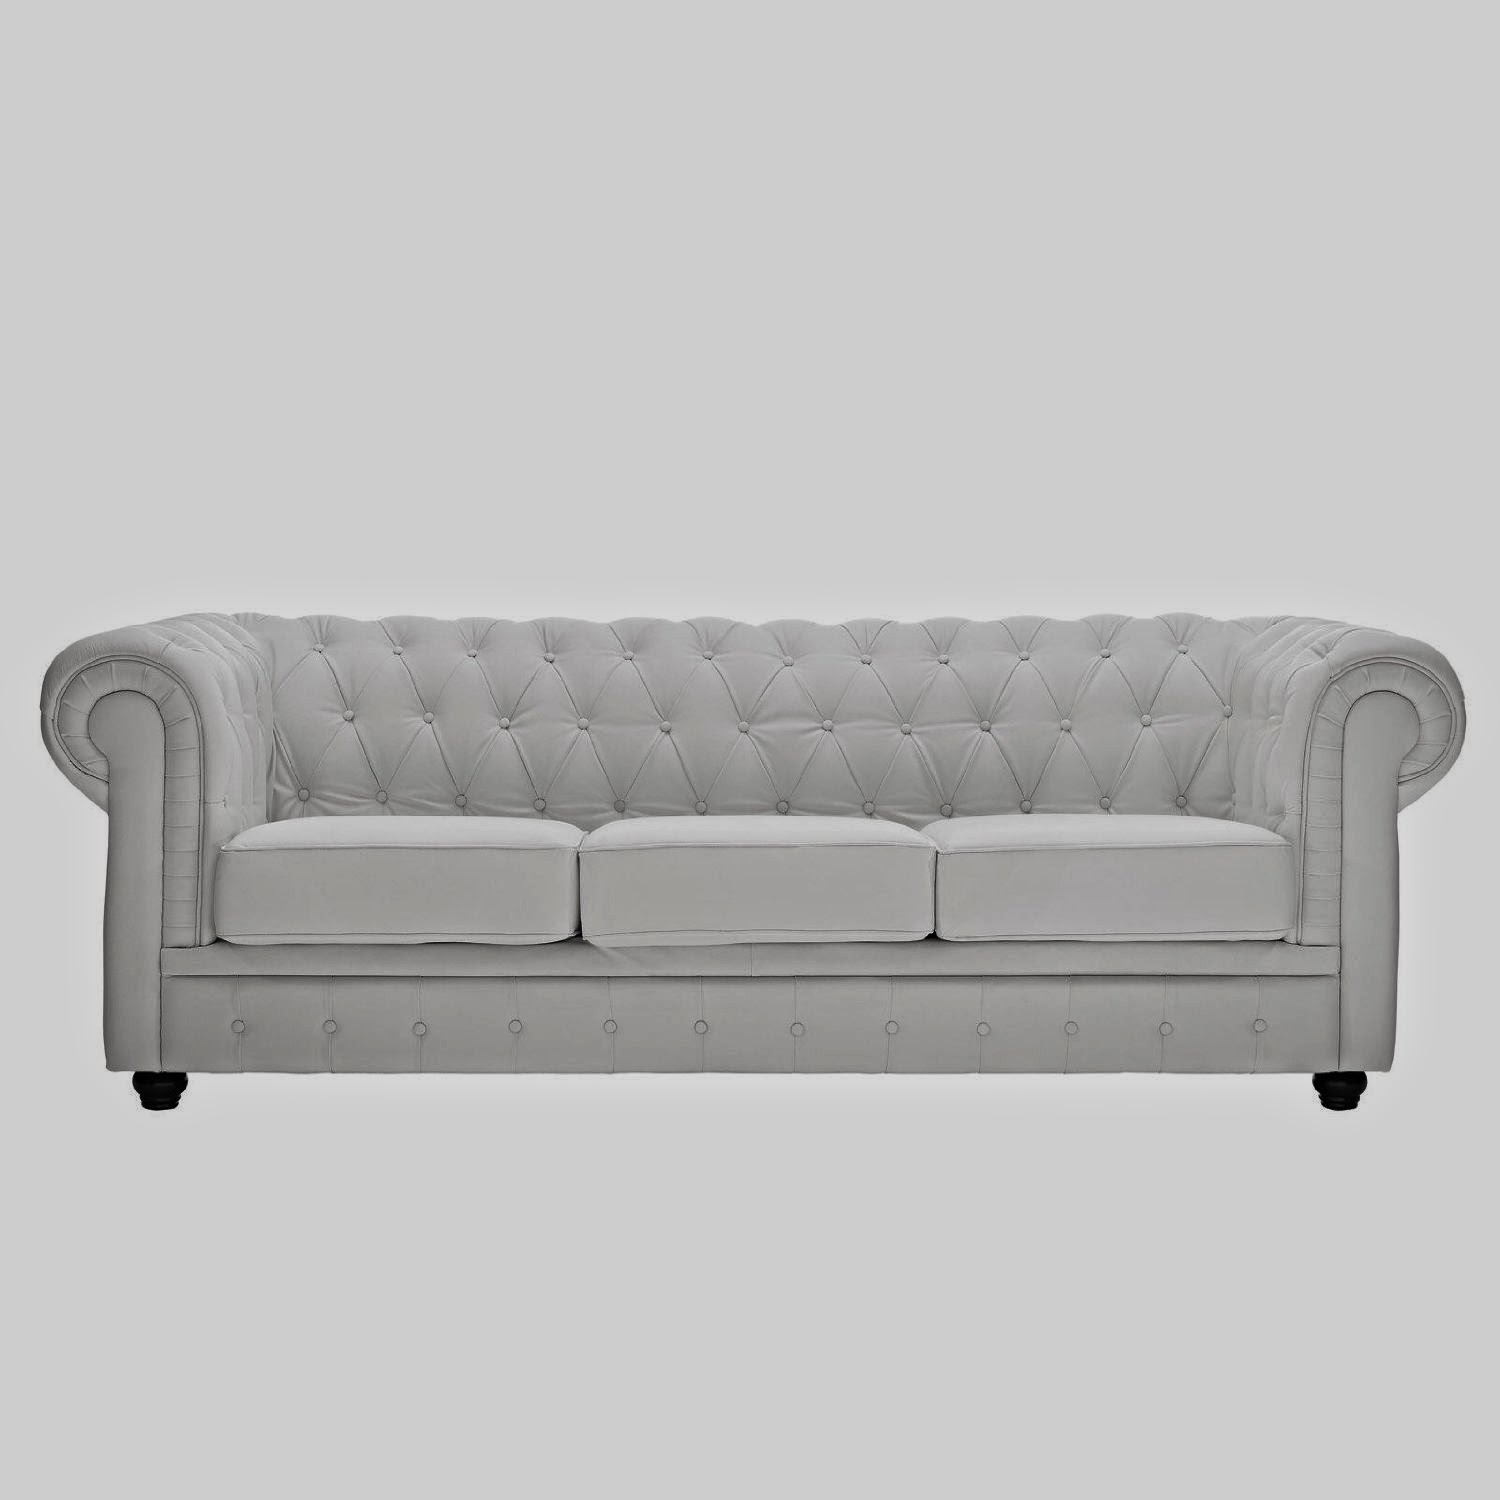 chesterfield couch white chesterfield couch